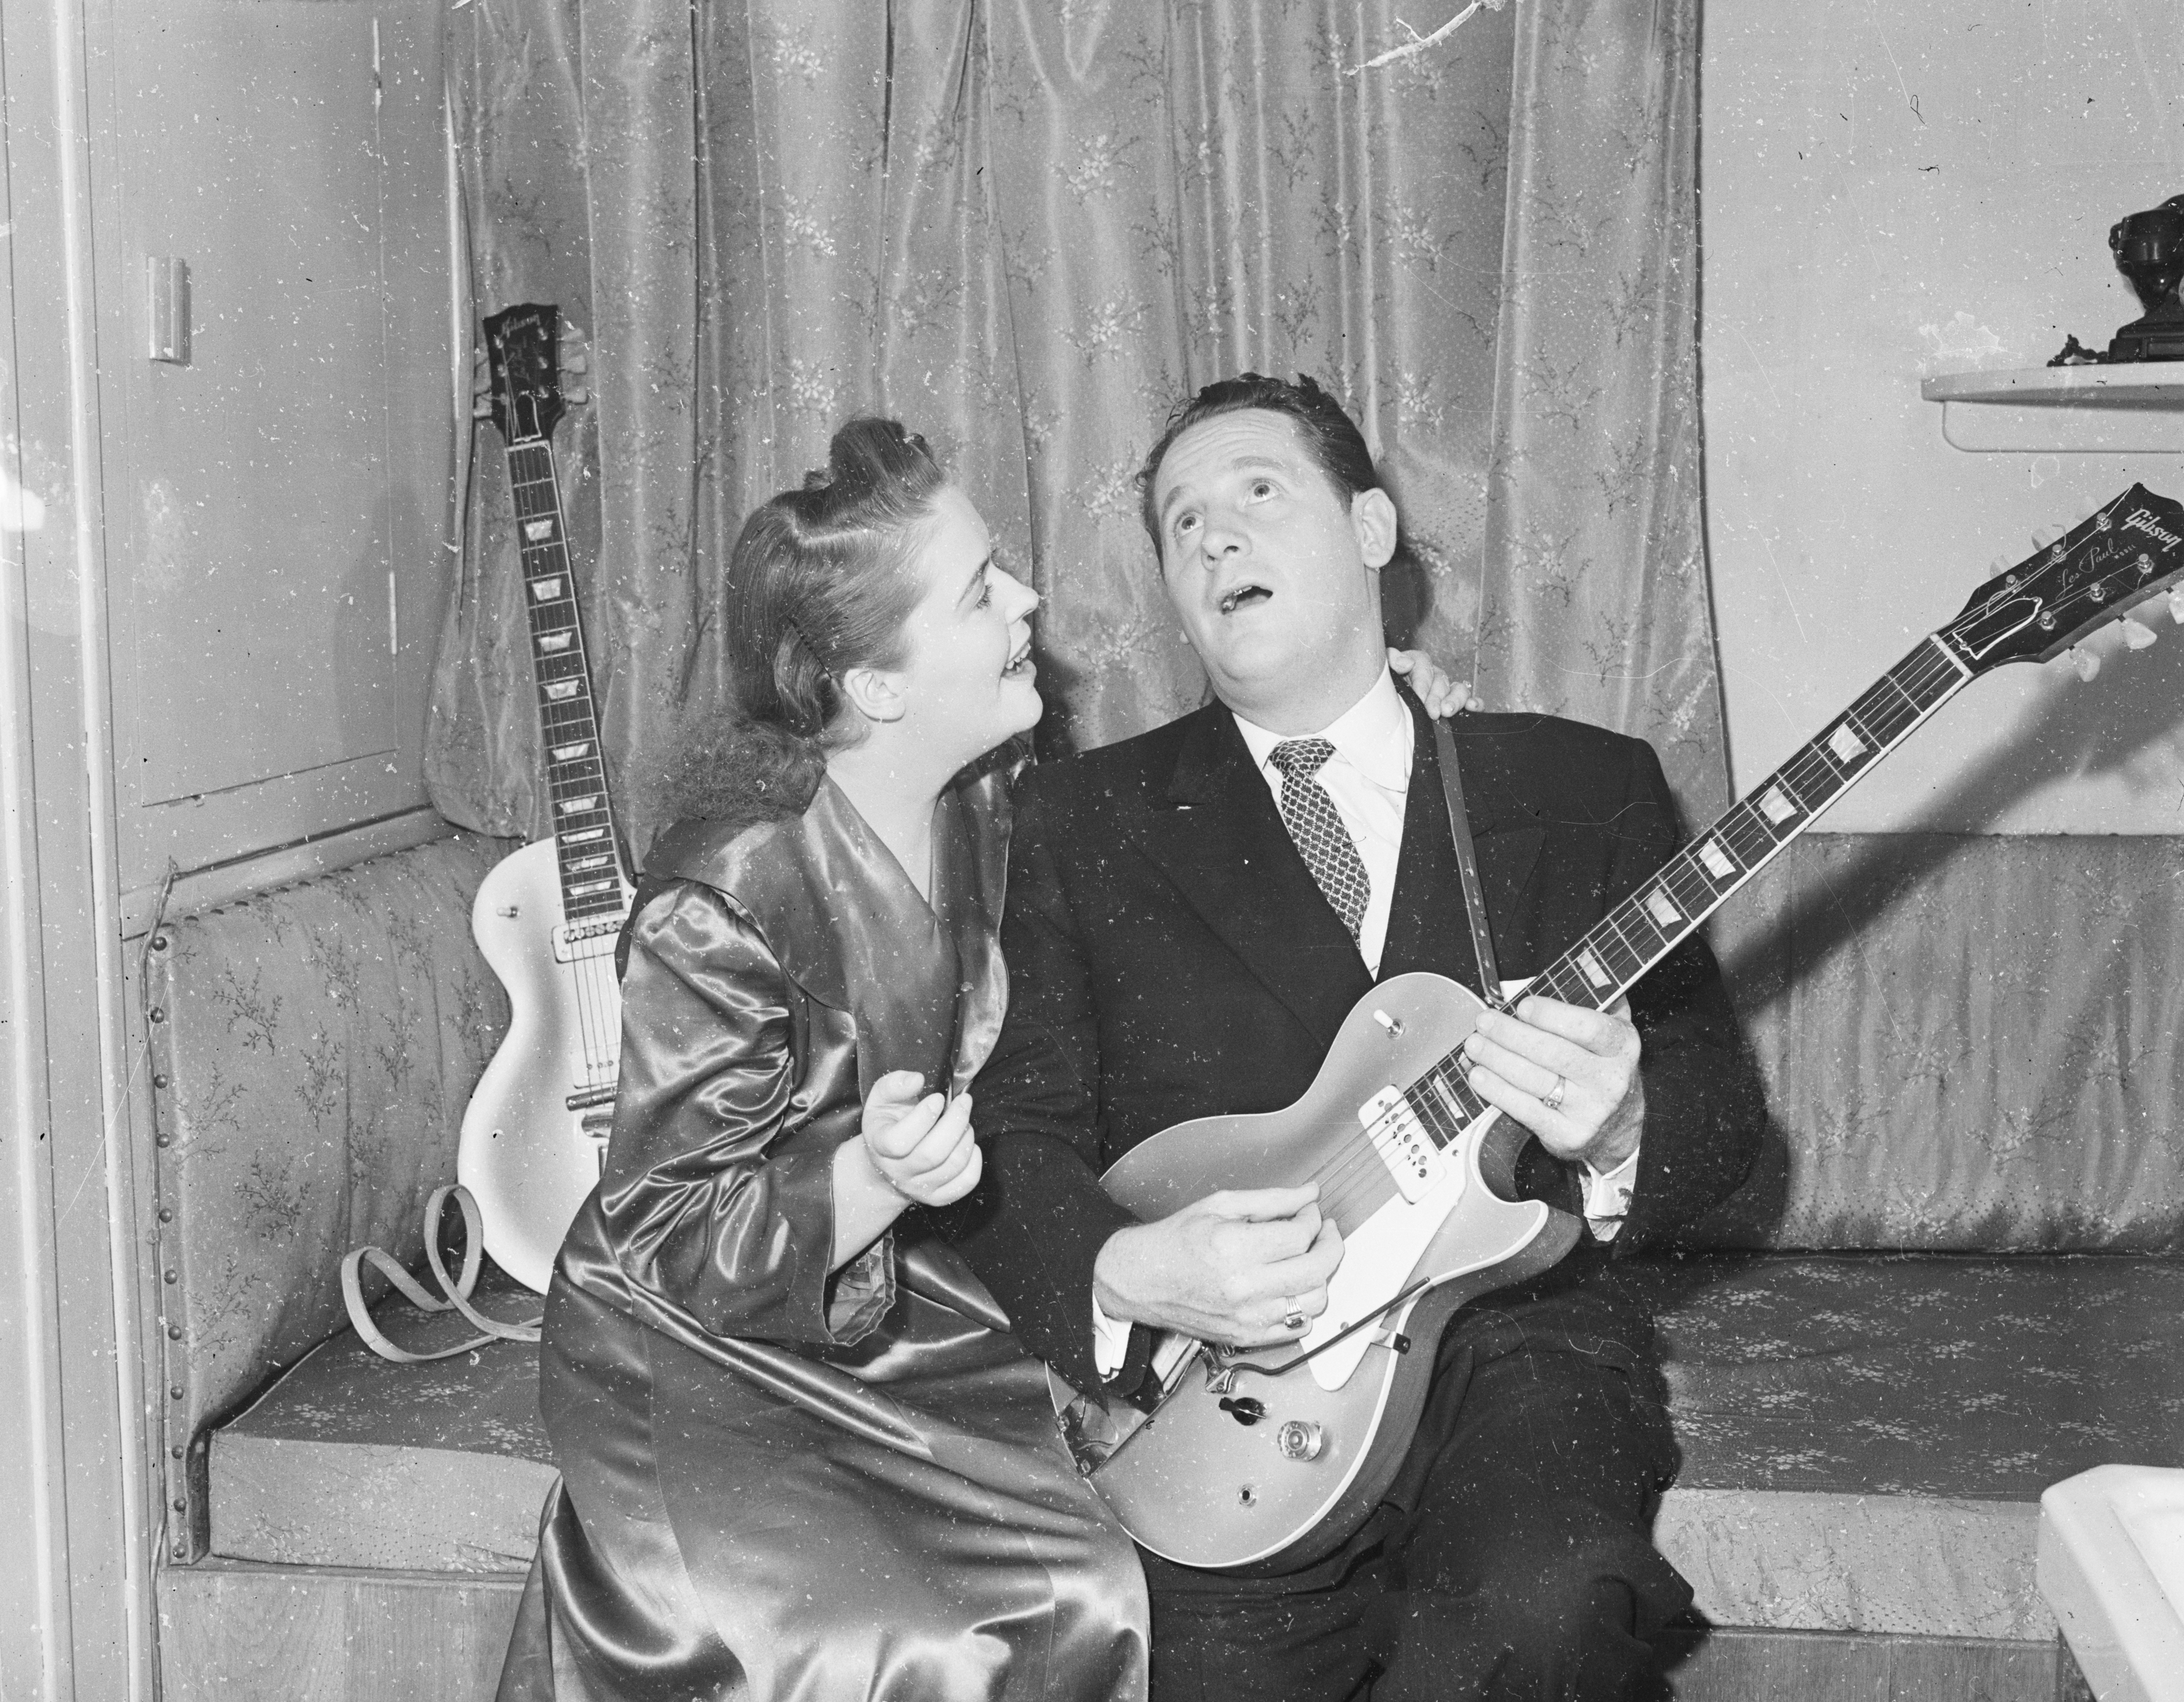 Paul's career took off in the 1940's: he jammed with Nat  King  Cole, met his idol, the great Django Reinhardt, and began seeing the young singer Ms. Mary Ford, pictured above. With Mary, Les made 36 gold records and 11 No. 1 pop hits, including  Vaya Con Dios,   How High the Moon  and  Nola.